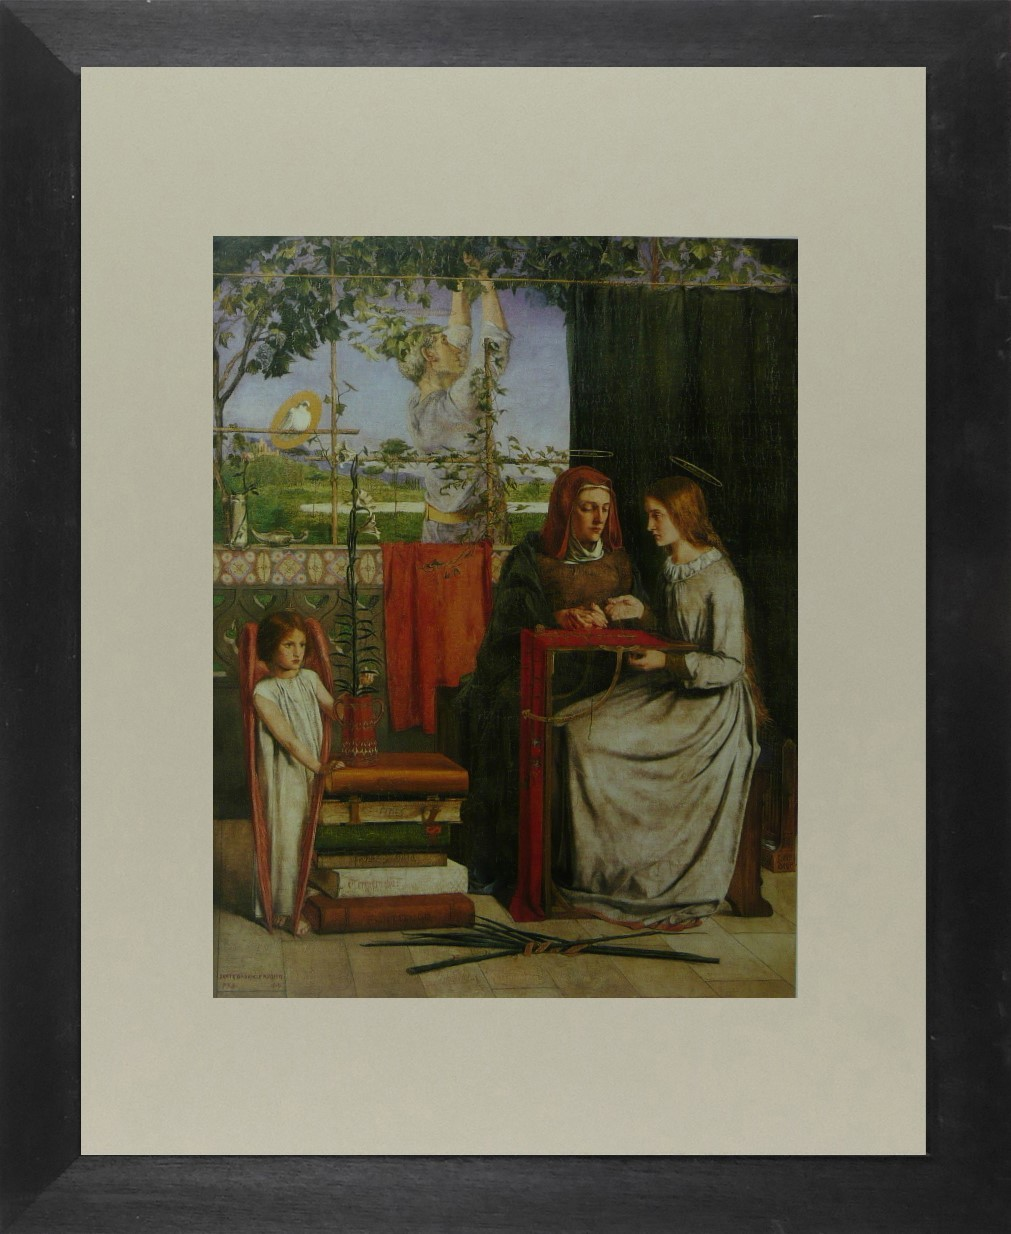 Girlhood of Mary Virgin - Dante Gabriel Rossetti - Framed Picture 11 x 14